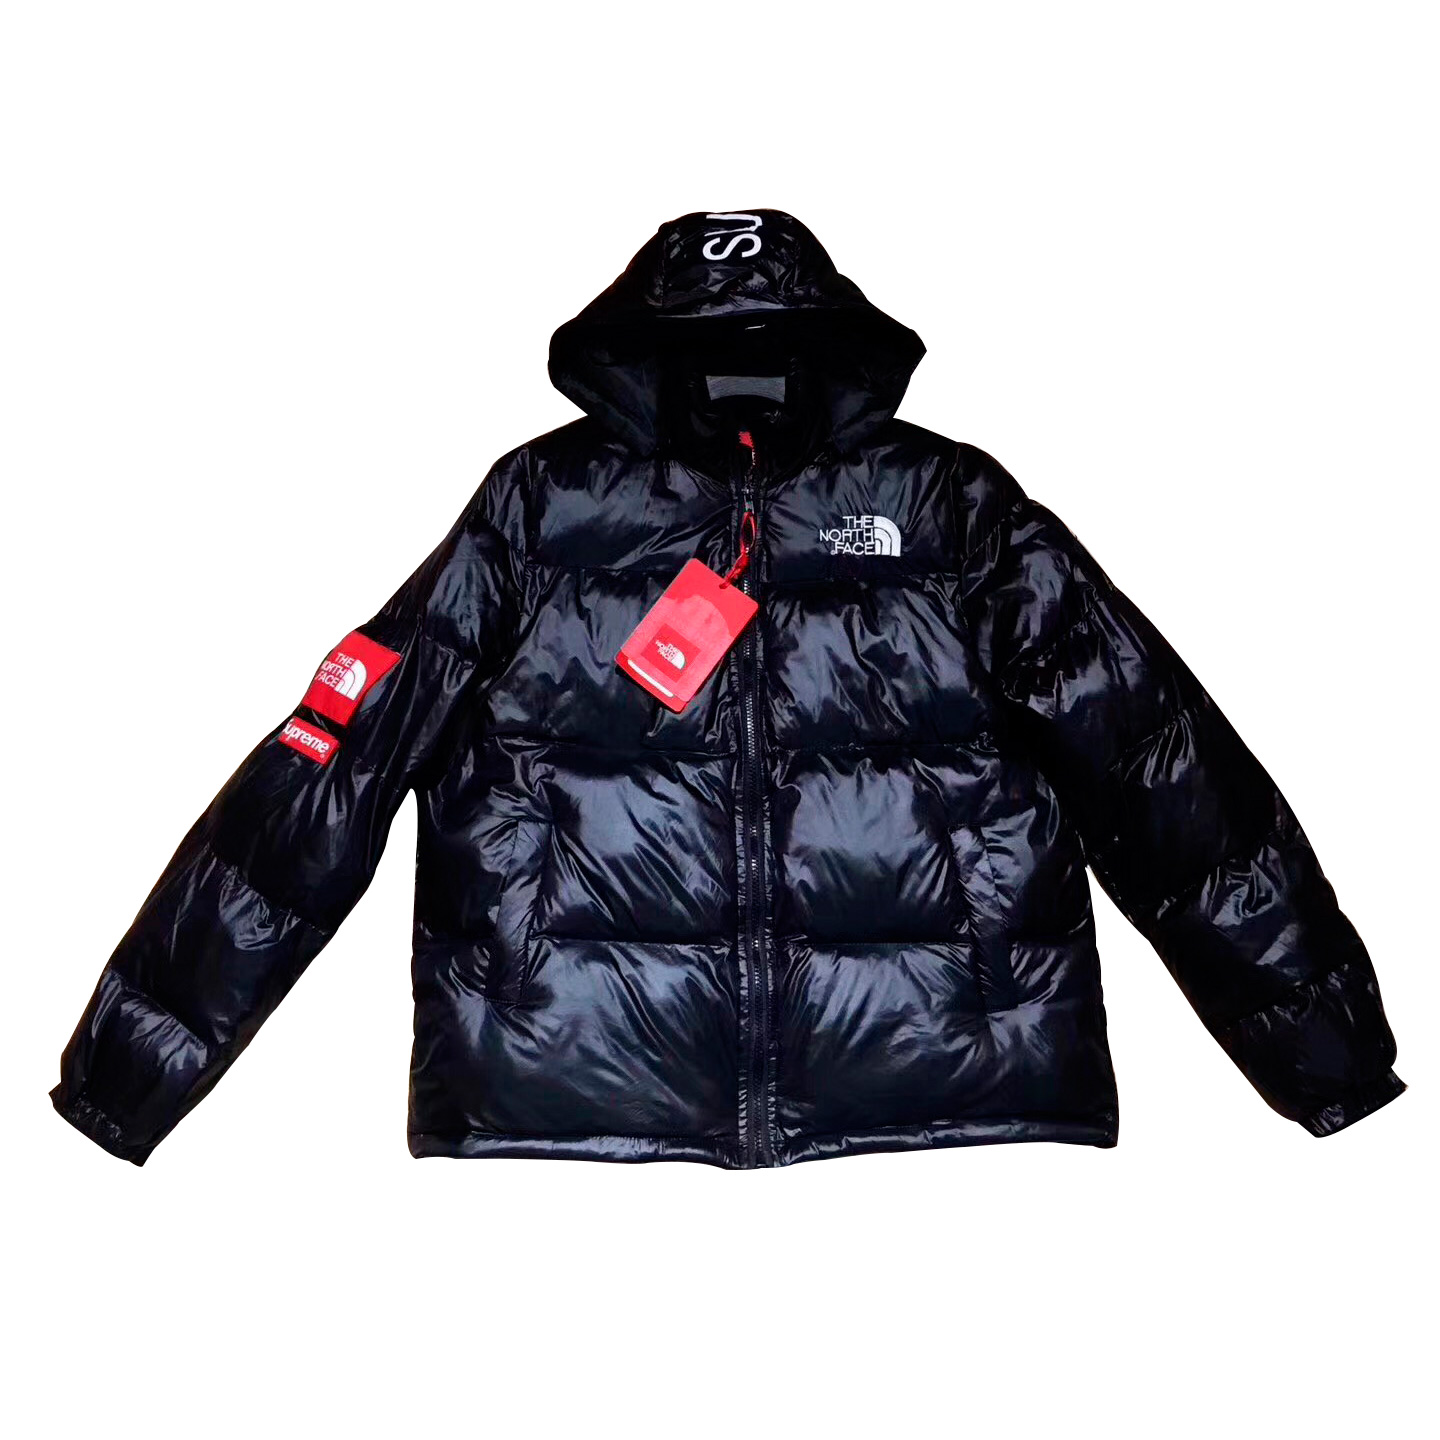 Supreme x The North Face Down Jacket ジャケット ブラック